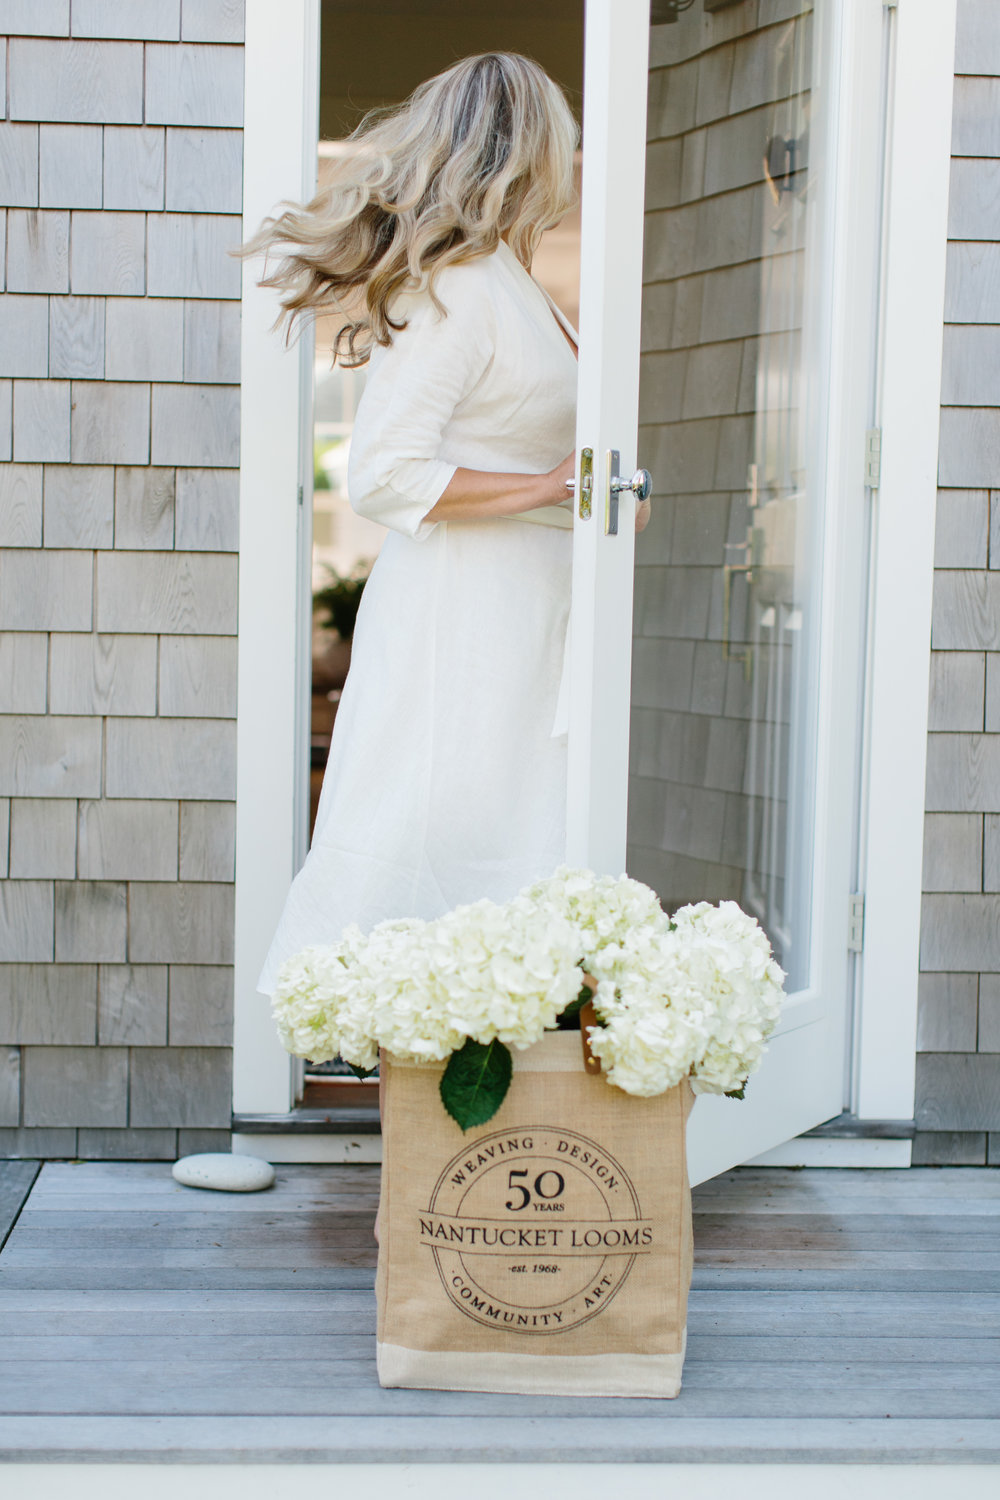 Nantucket Travel Guide New England Blogger Abby Capalbo | Photography: Erin McGinn